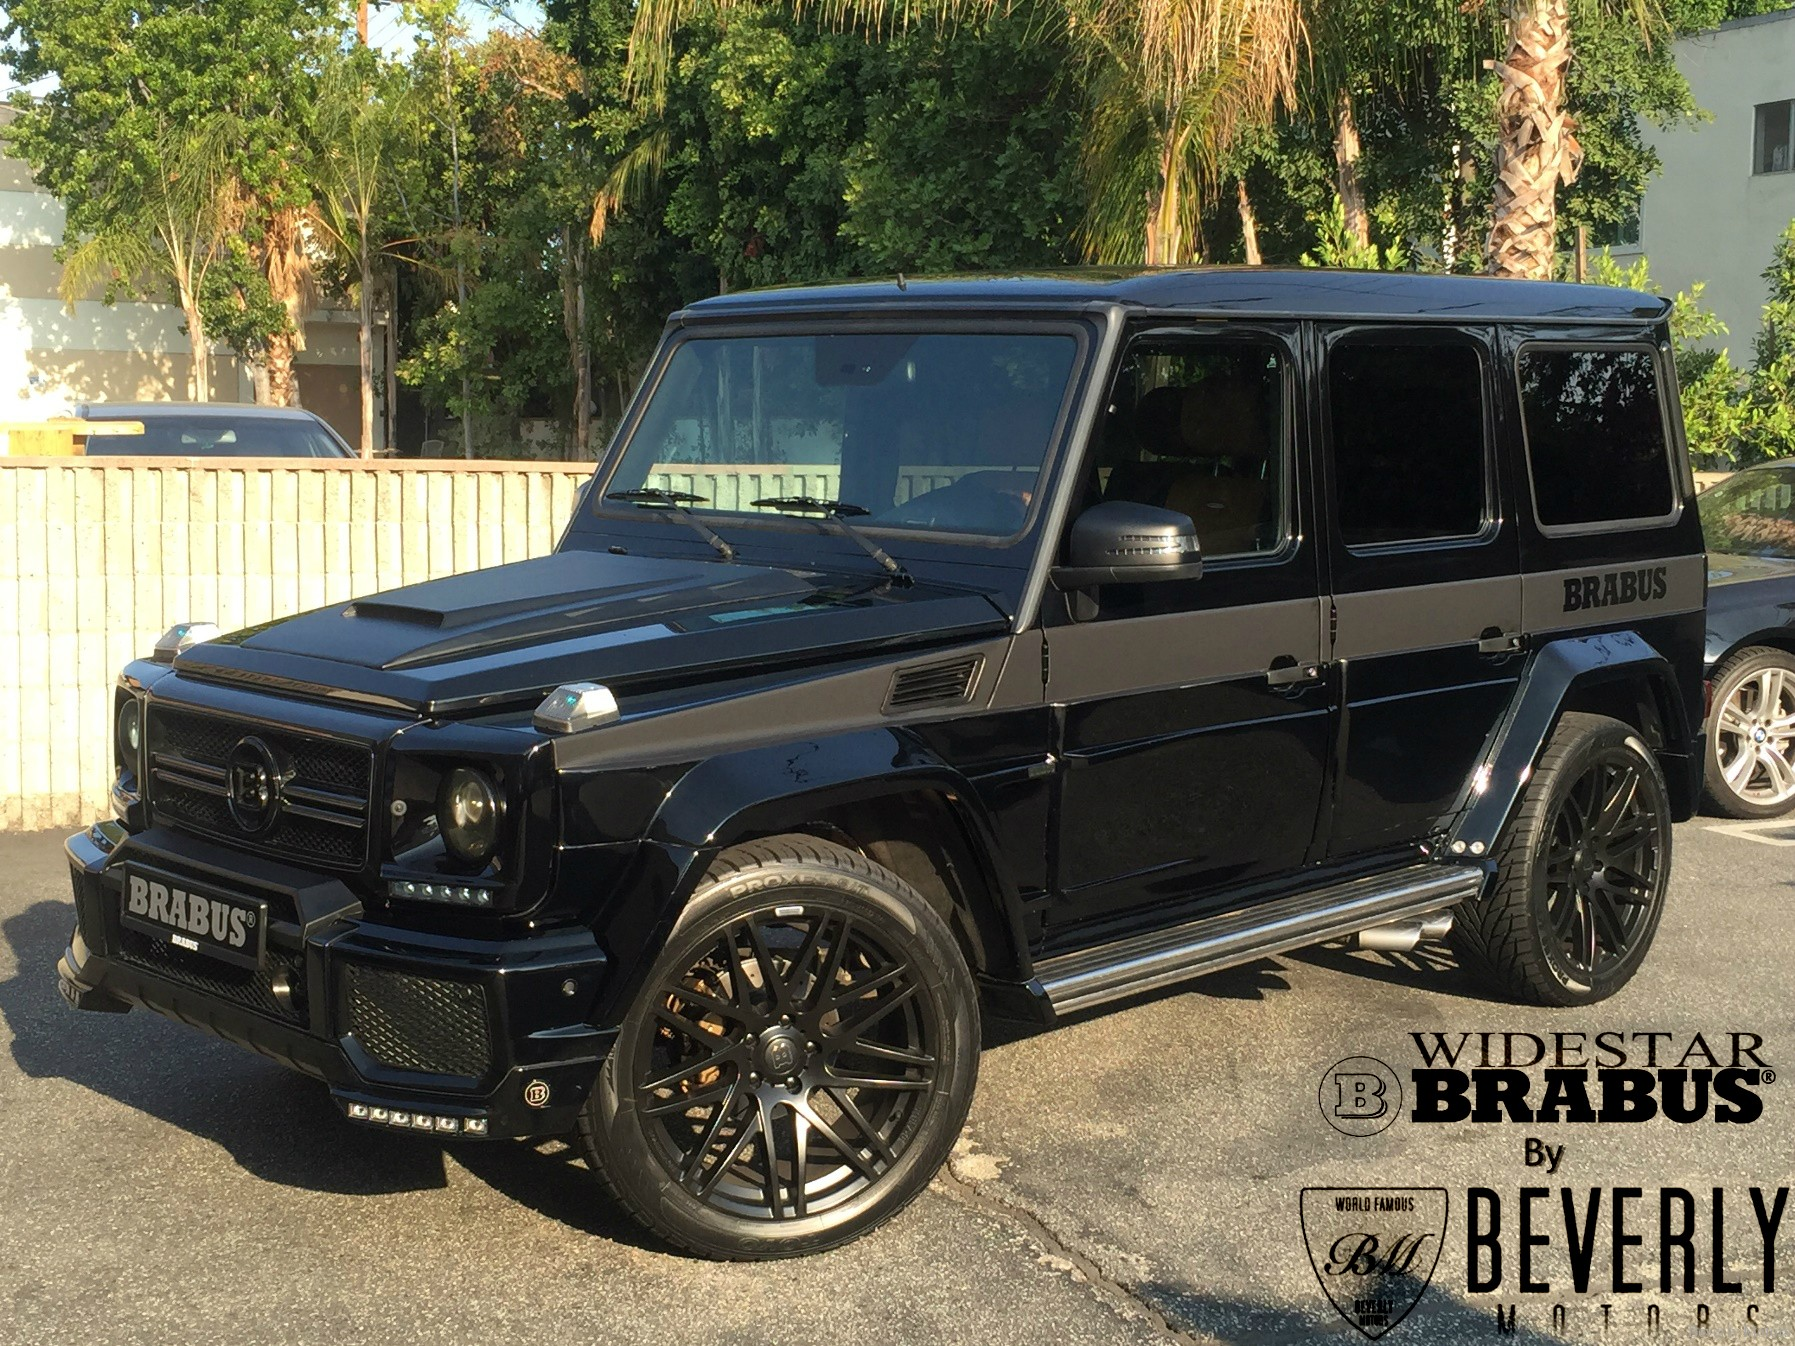 2004 mercedes benz g55 amg brabus widestar edition for 2004 mercedes benz g class